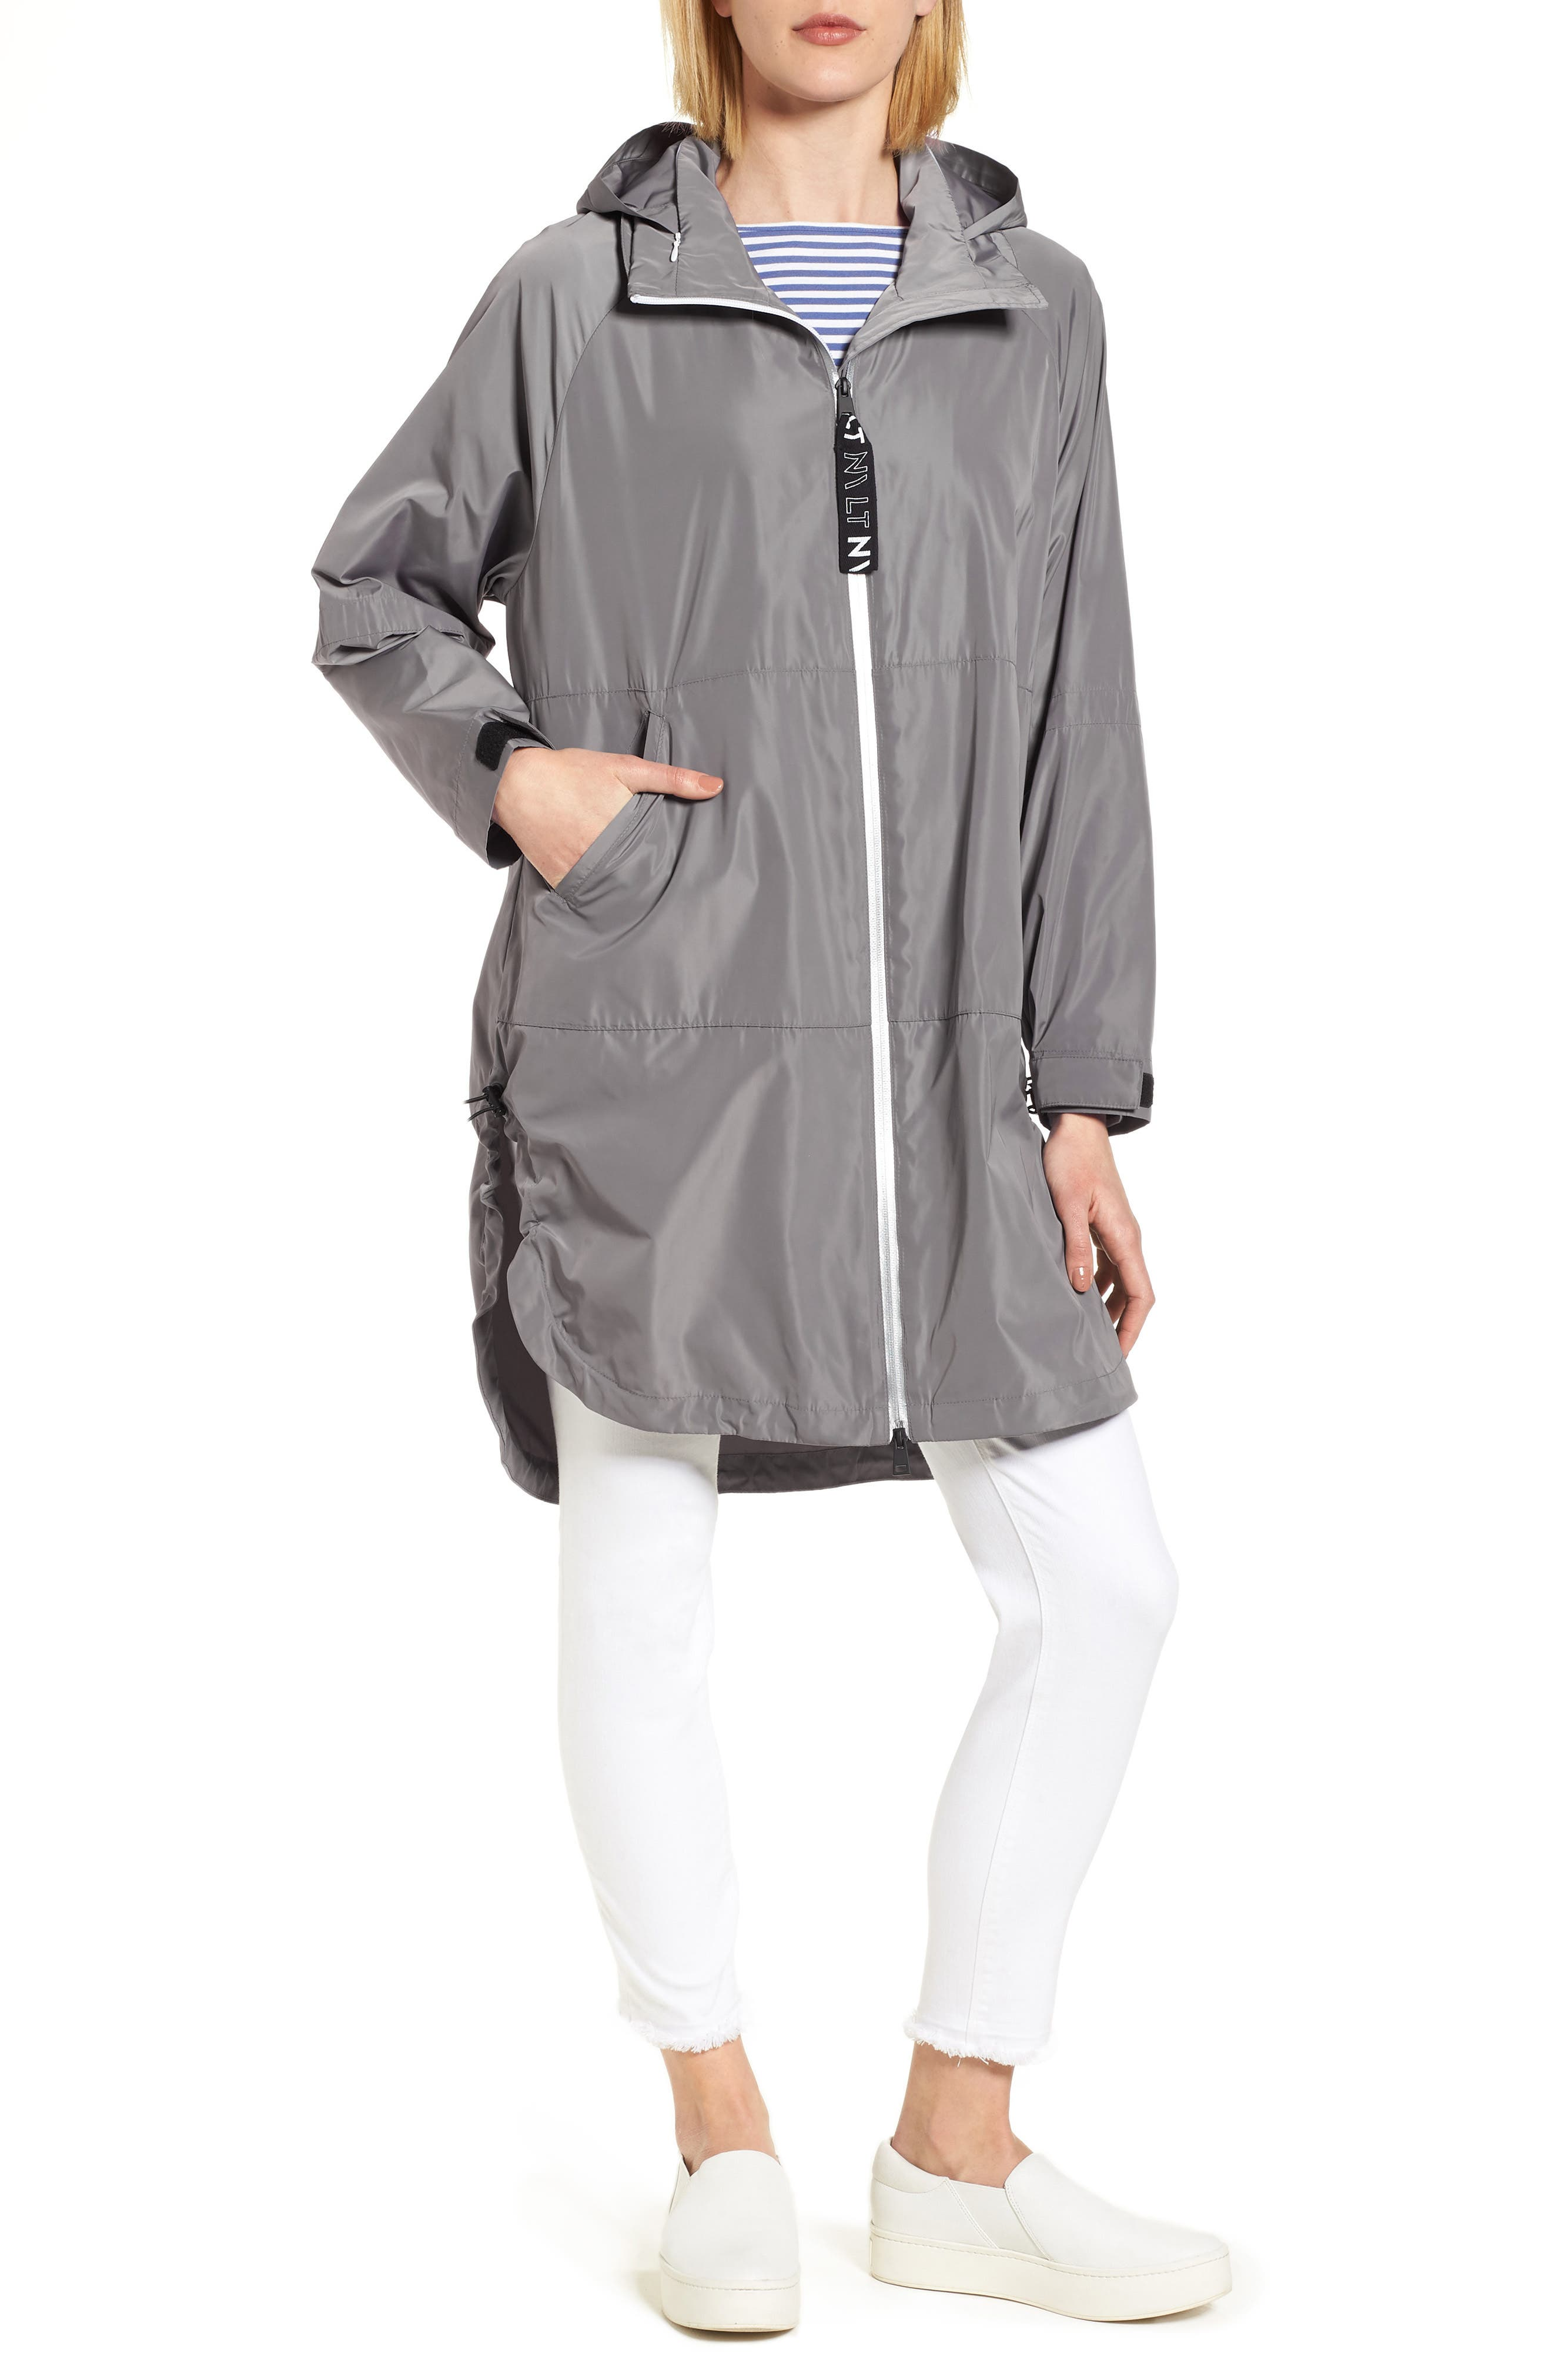 Poly-Luxe Packable Oversize Jacket,                             Main thumbnail 1, color,                             020